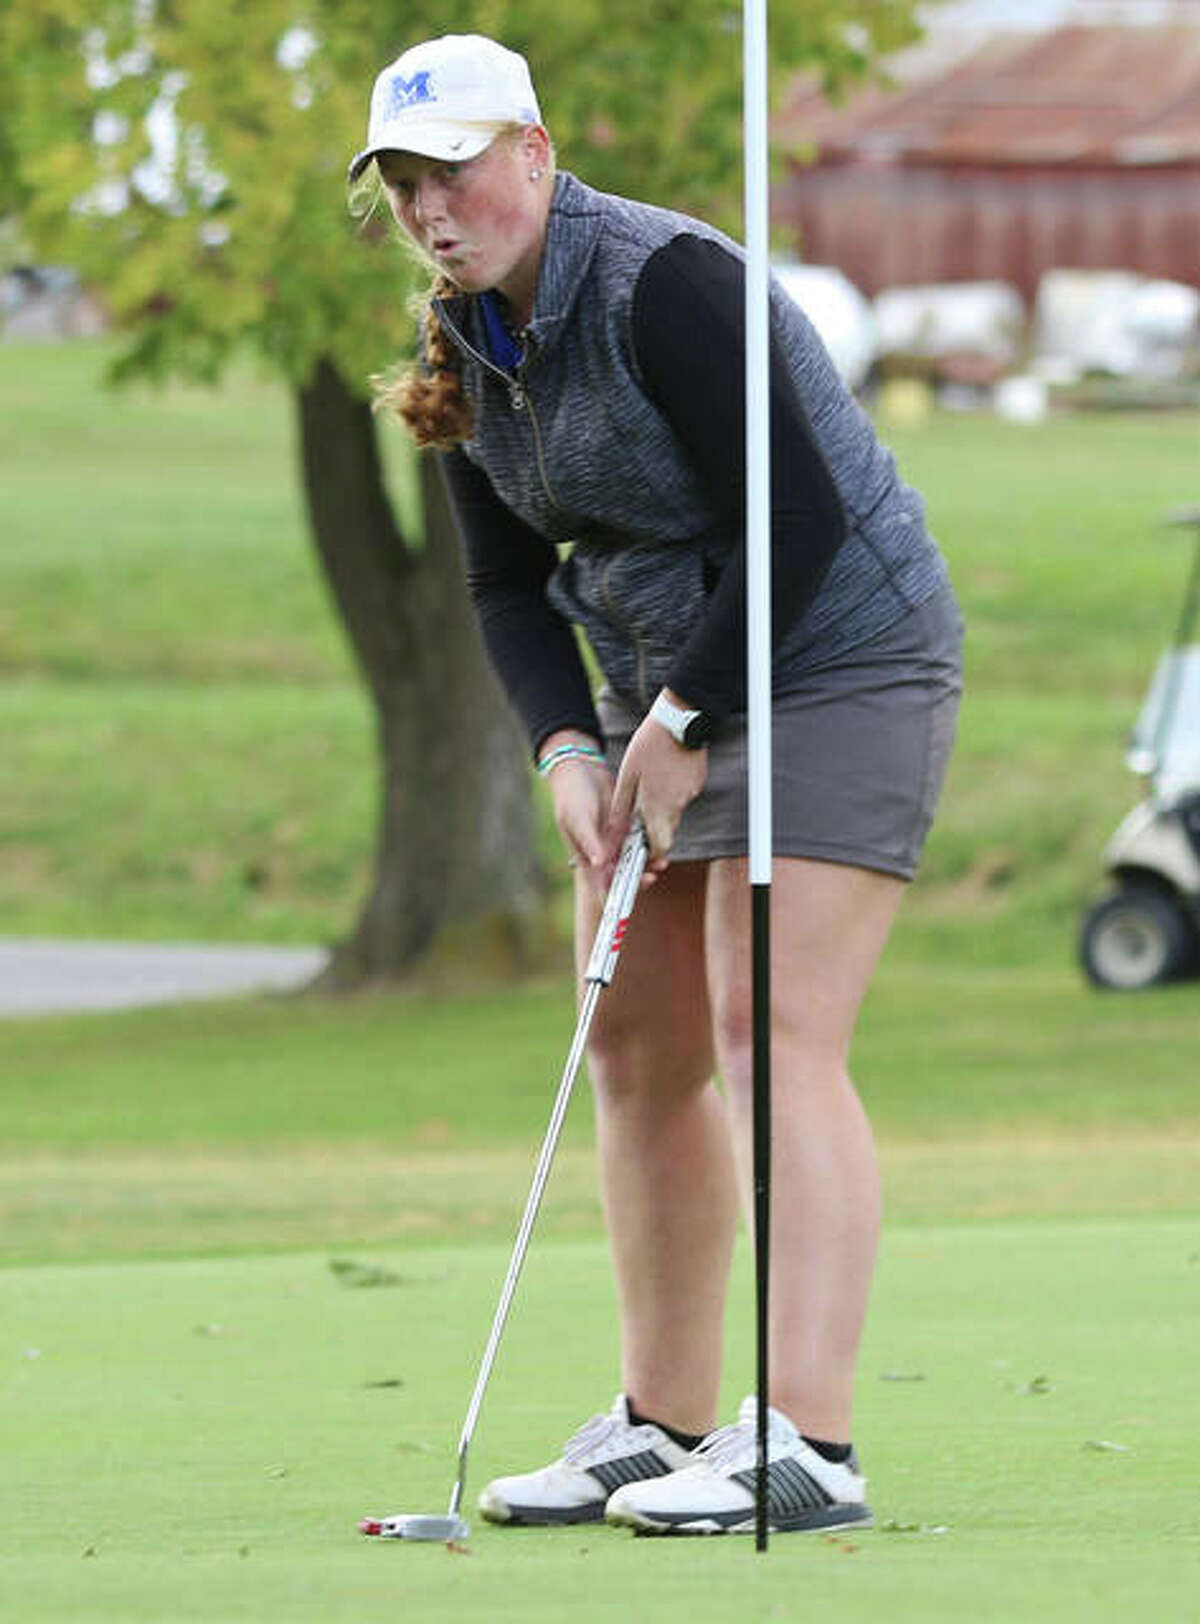 Marquette's Gracie Piar breathes a sigh of relief after her short putt rims the cup before falling on hole No. 2 at Oak Brook on Thursday in Edwardsville's Gary Bair Invite. Piar was tourney medalist at 73.